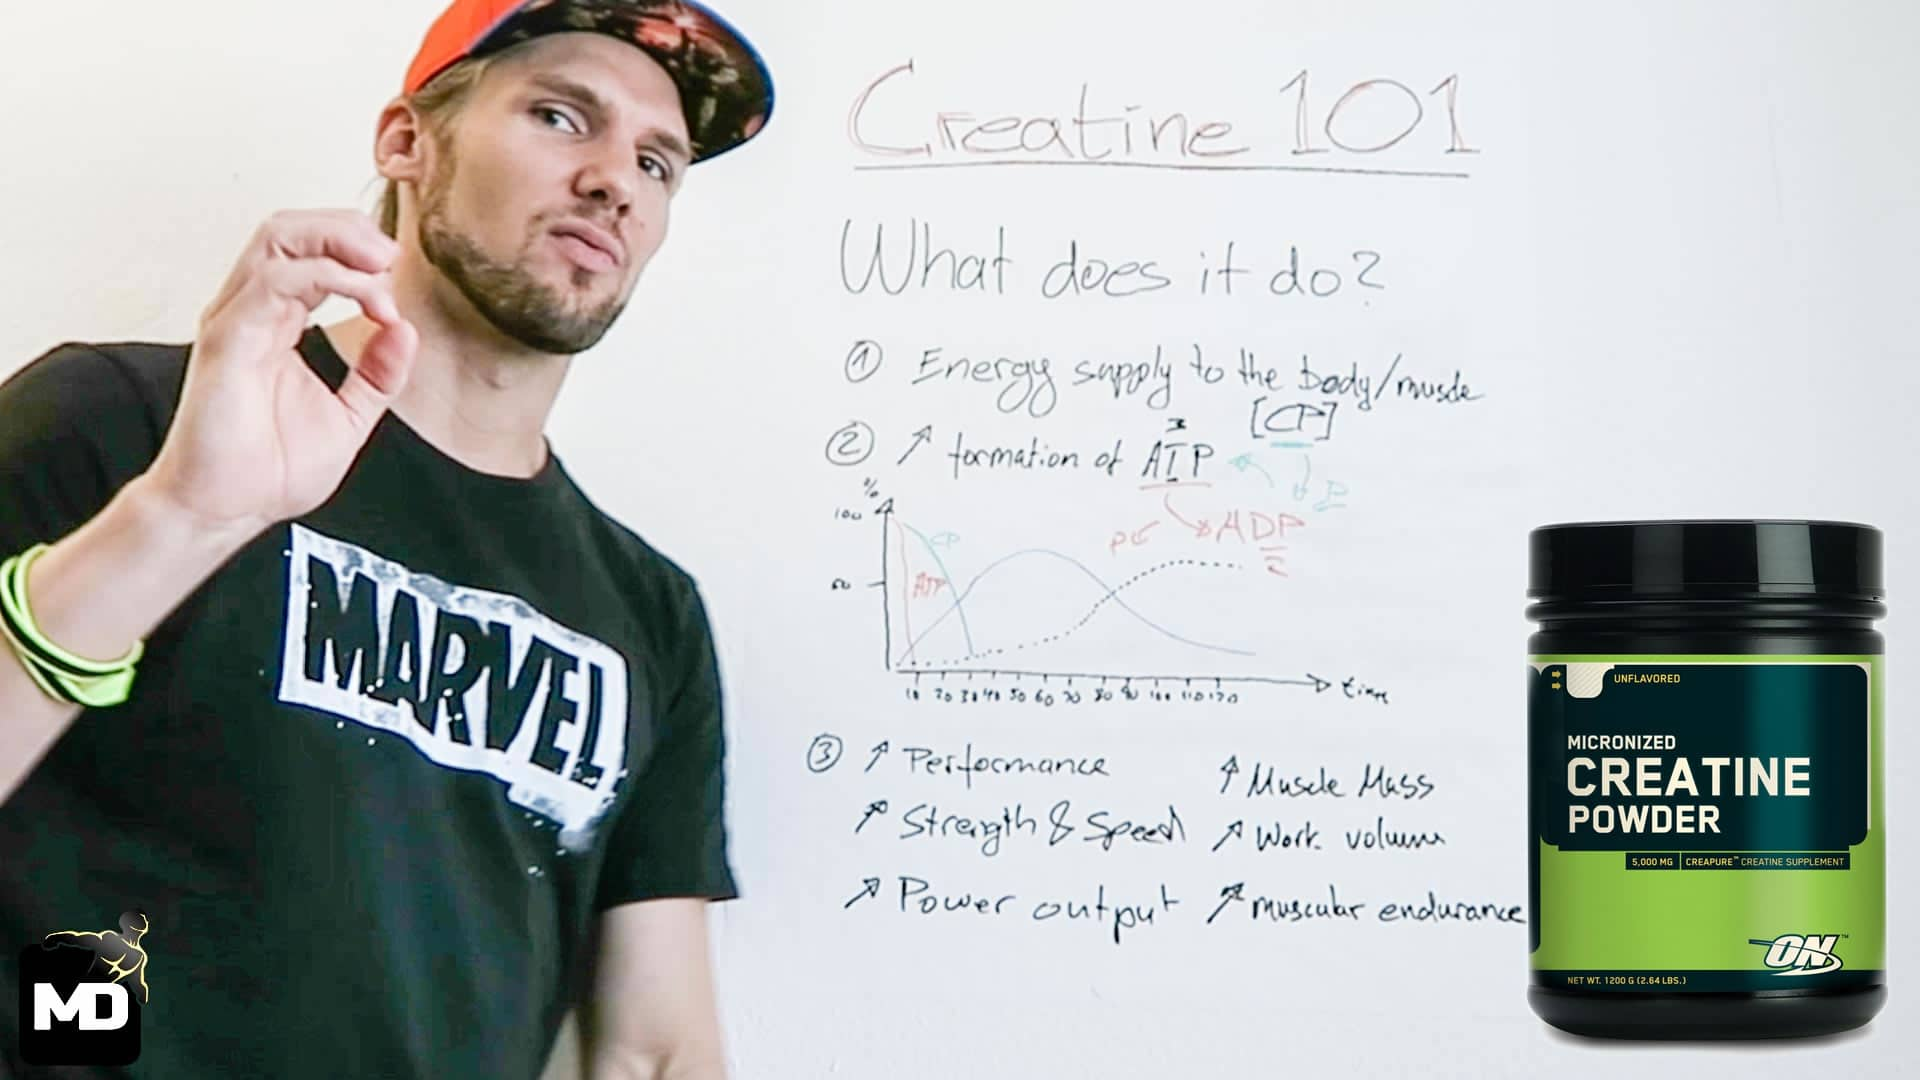 [Creatine 101] – What Is Creatine? What Dosage? Side Effects? – All You Need To Know!